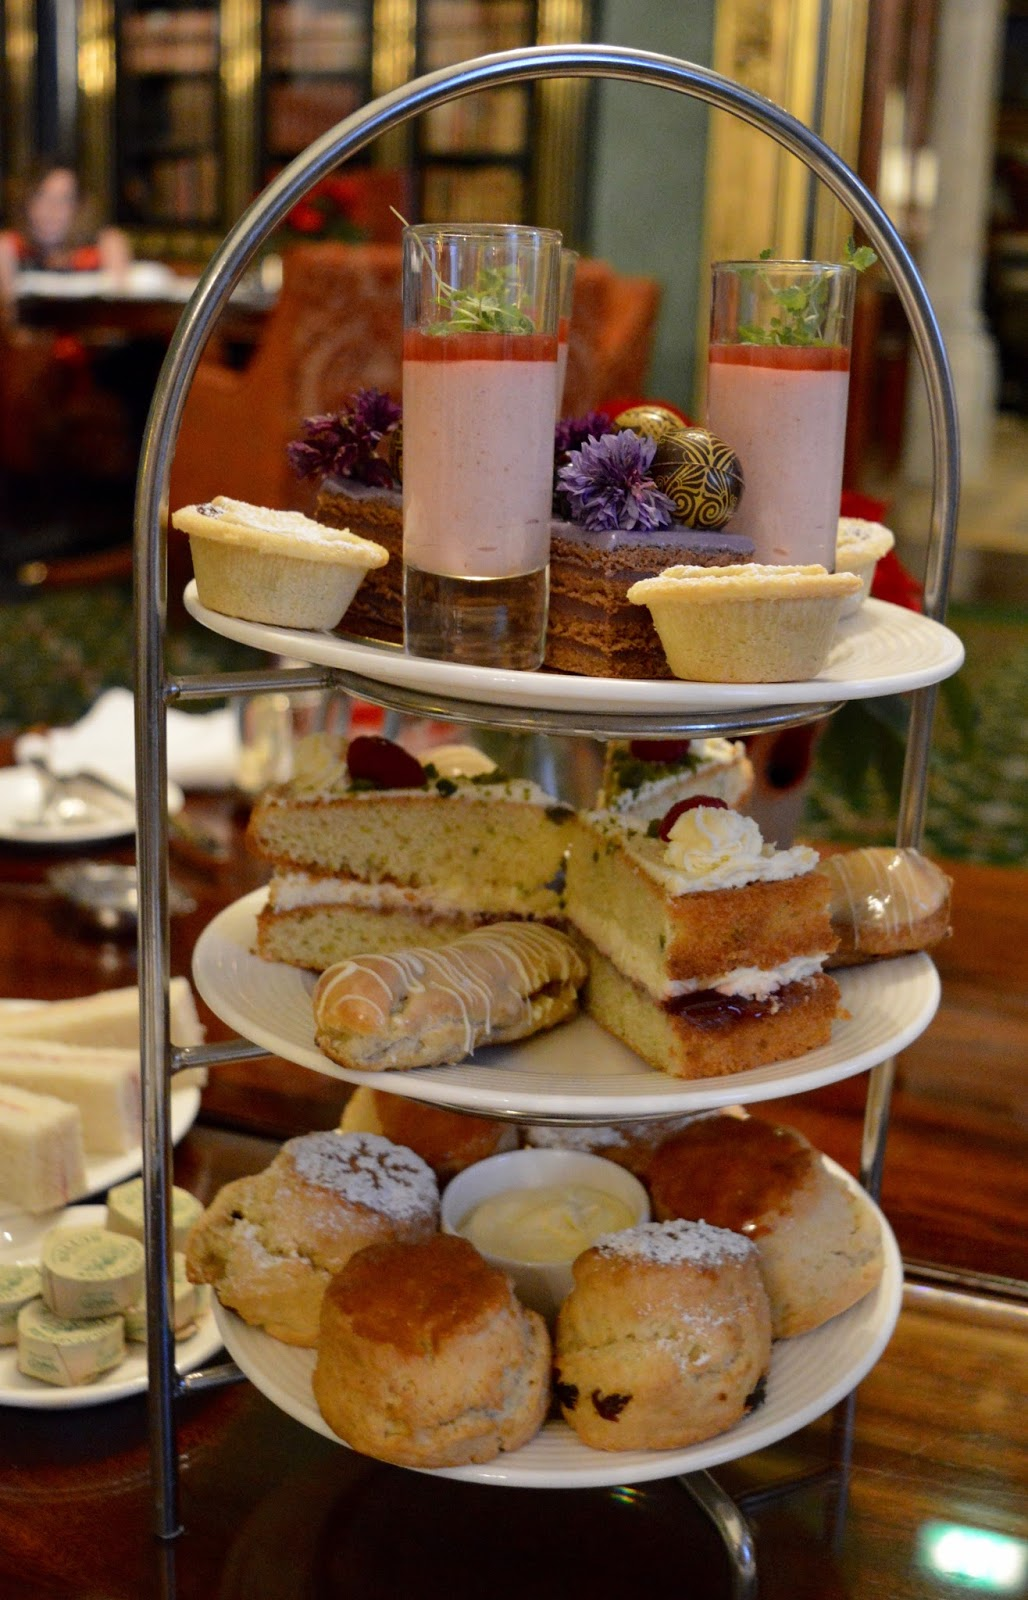 Afternoon tea at Wynyard Hall (with kids) - A Review - desserts and cakes